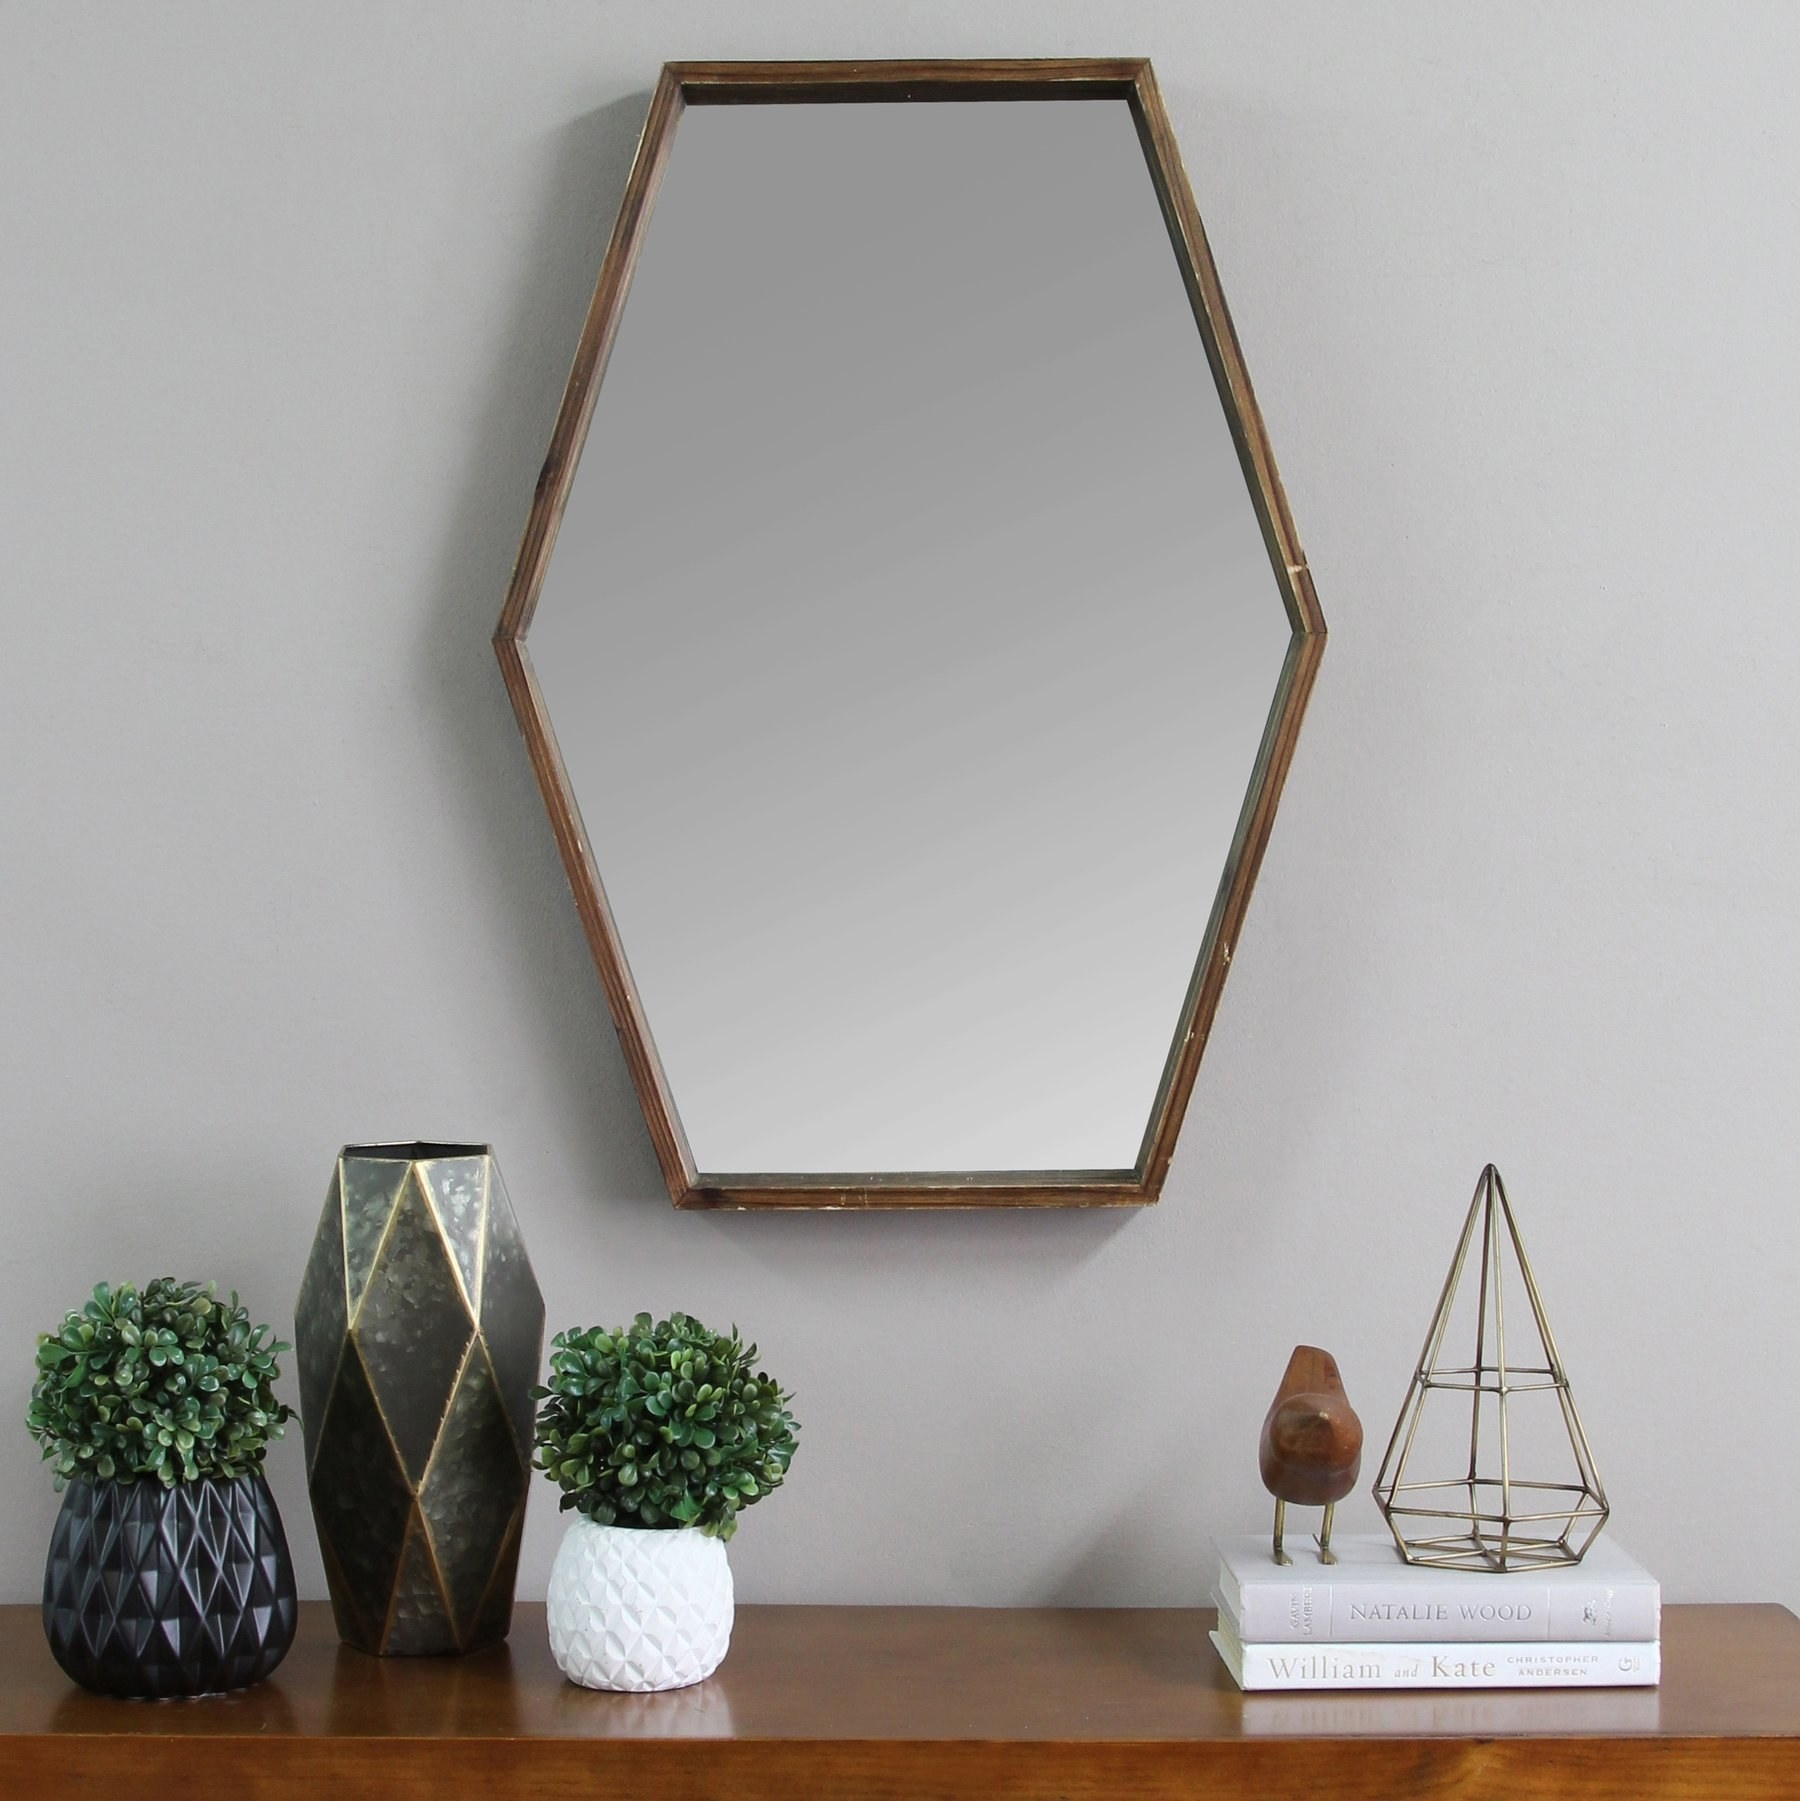 The wooden-framed mirror